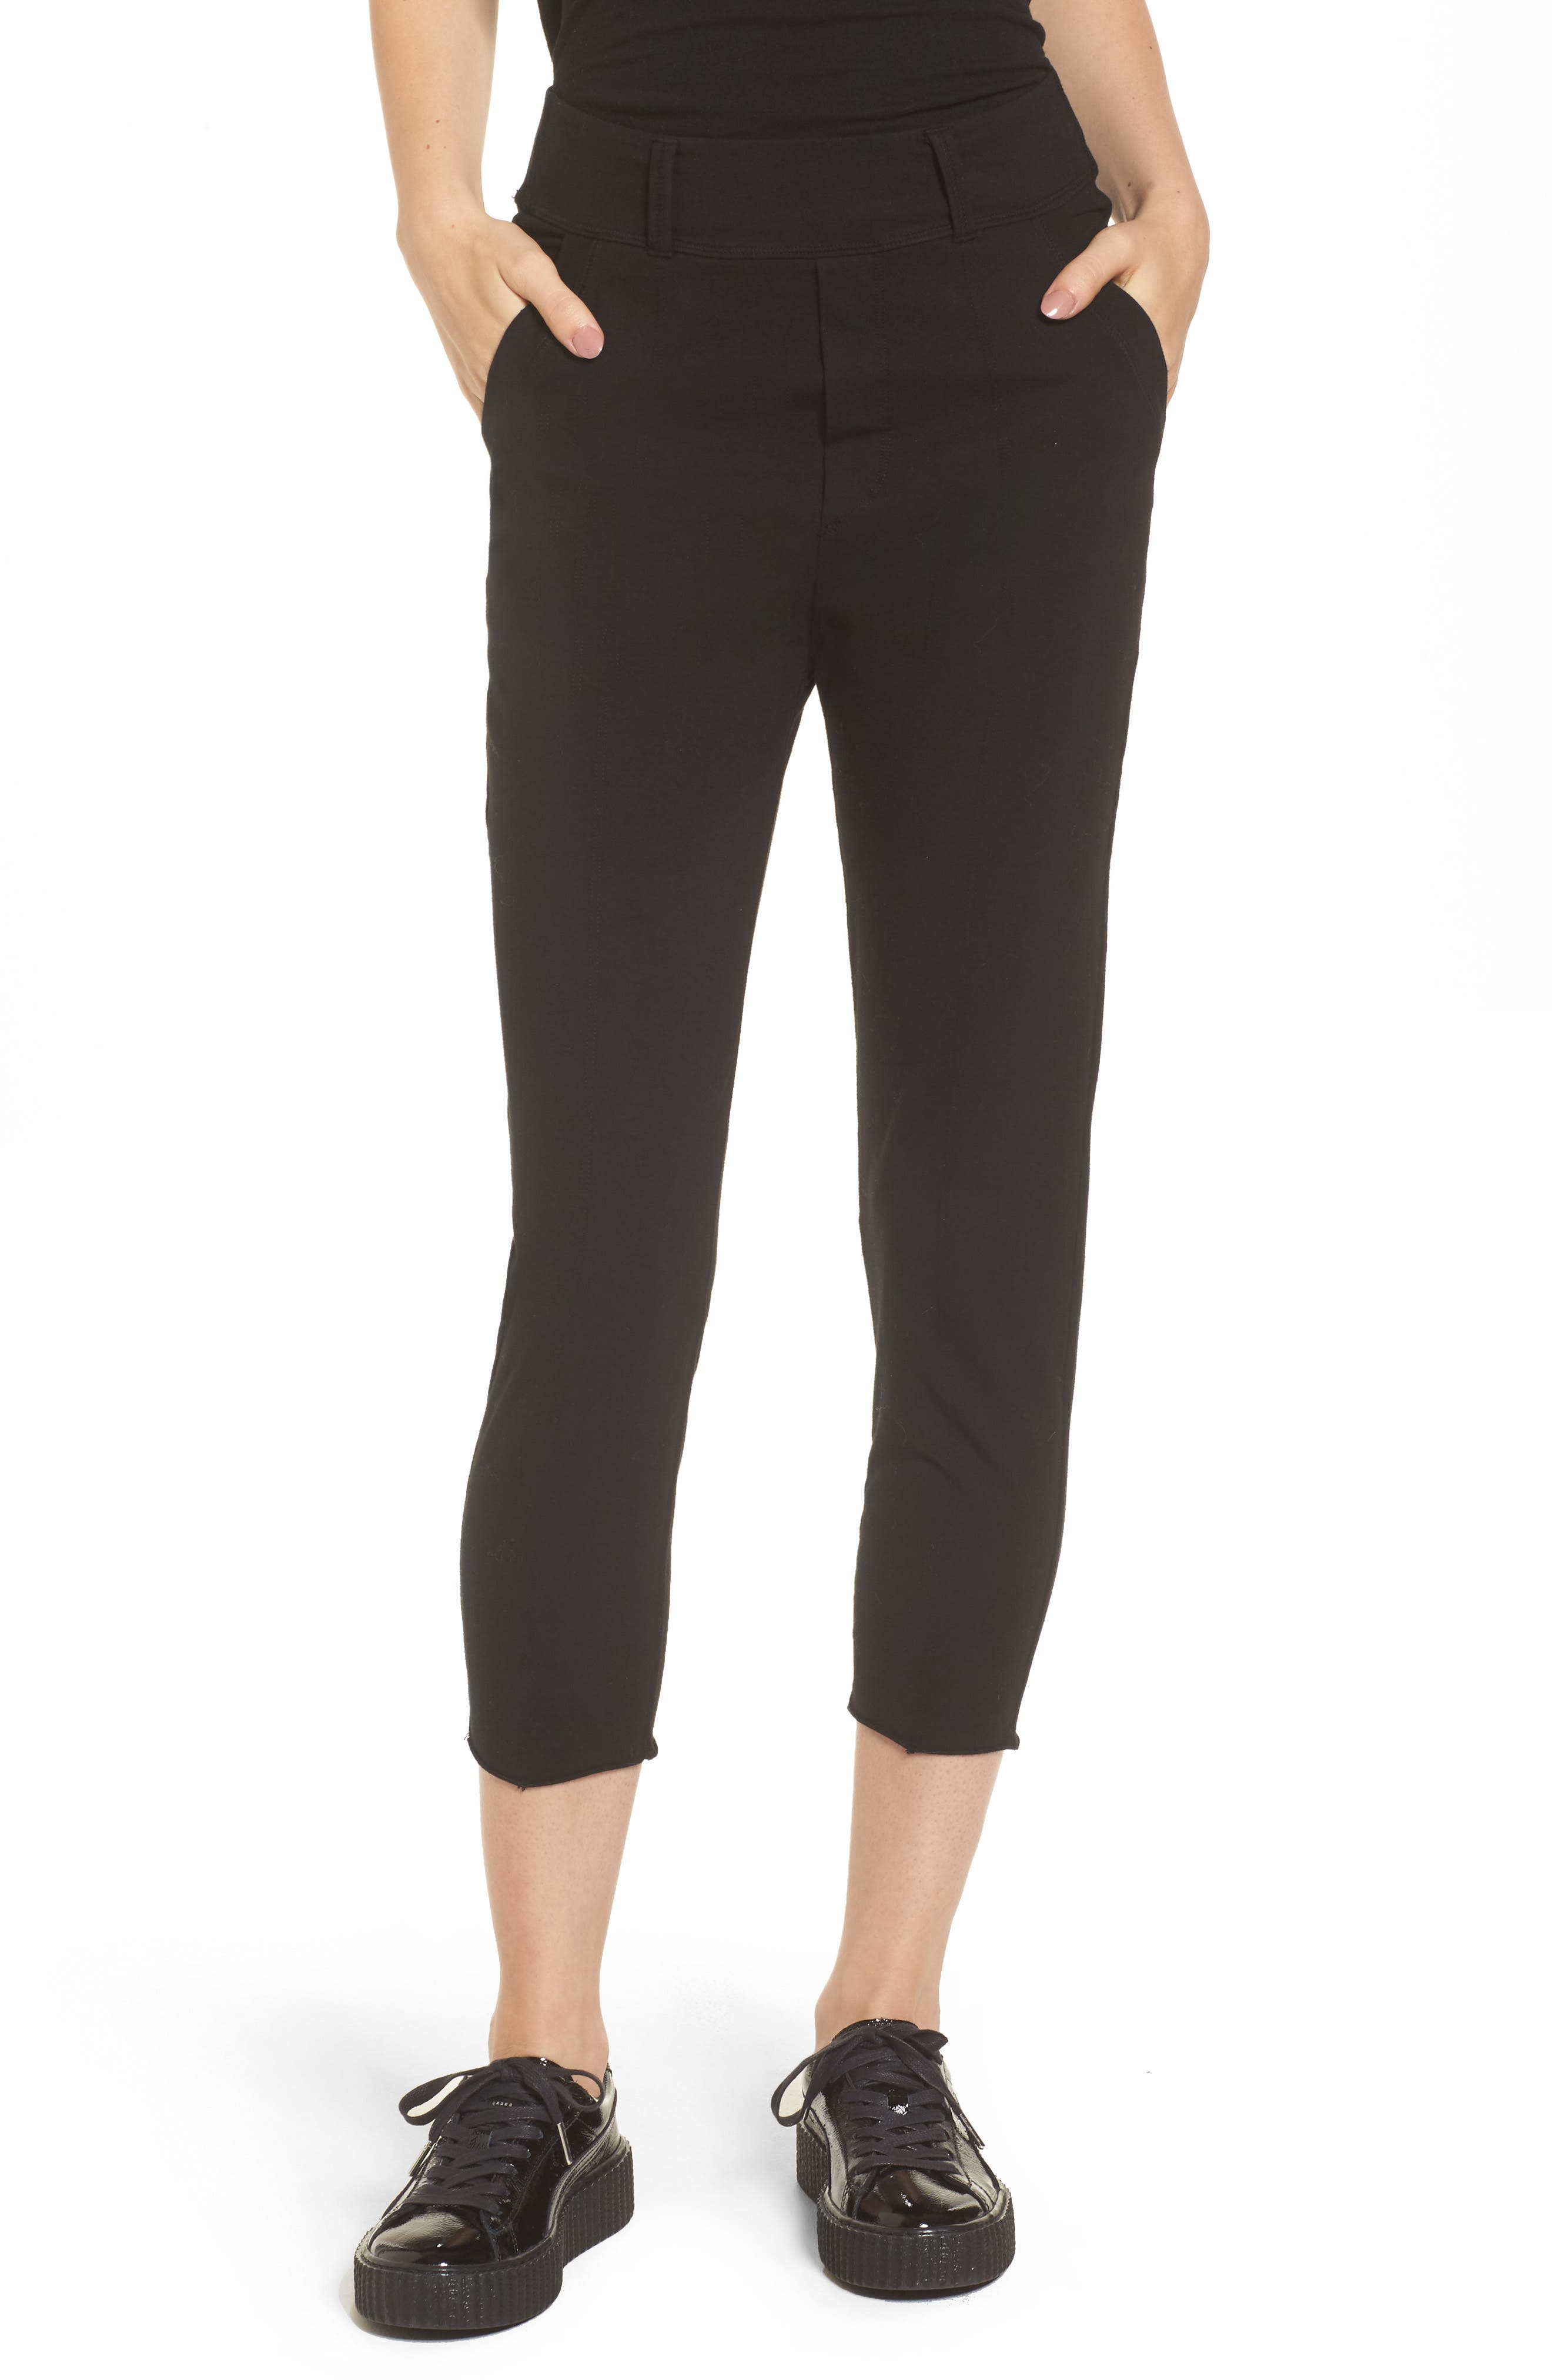 Alternate Image 1 Selected - Frank & Eileen Tee Lab The Trouser Knit Pants